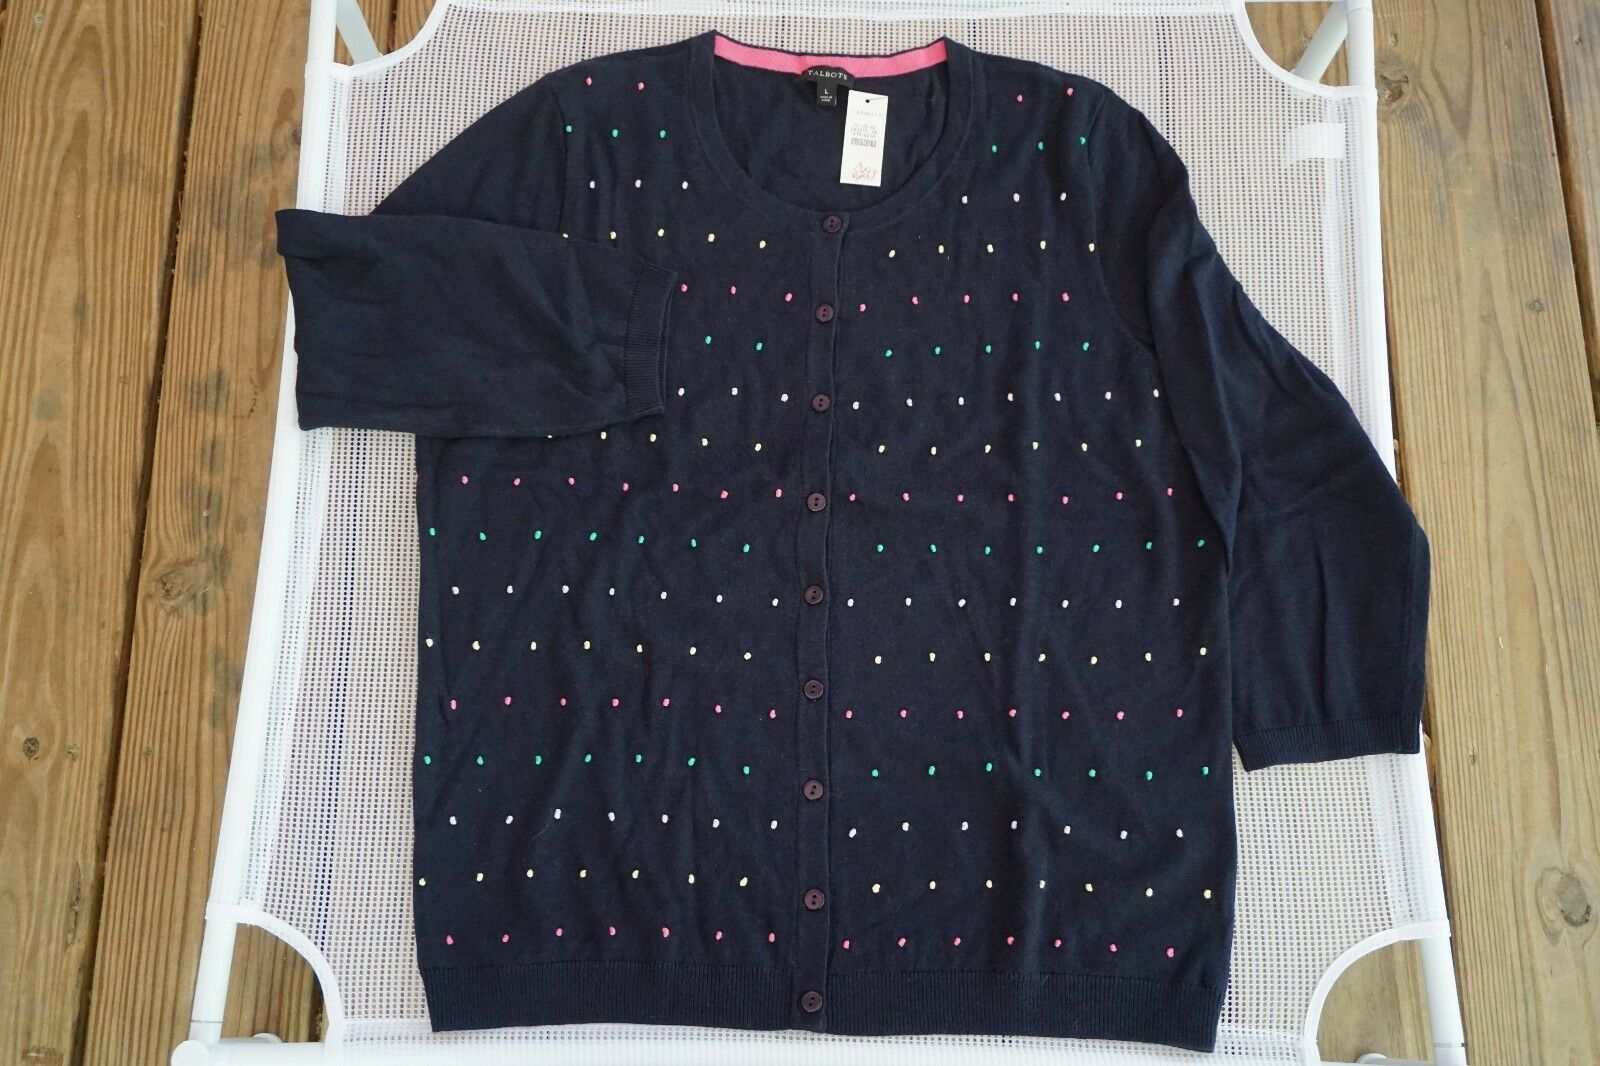 TALBOTS NWT  89.50 COTTON BLEND NAVY FRENCH KNOTS CHARMING CARDIGAN SIZE LARGE